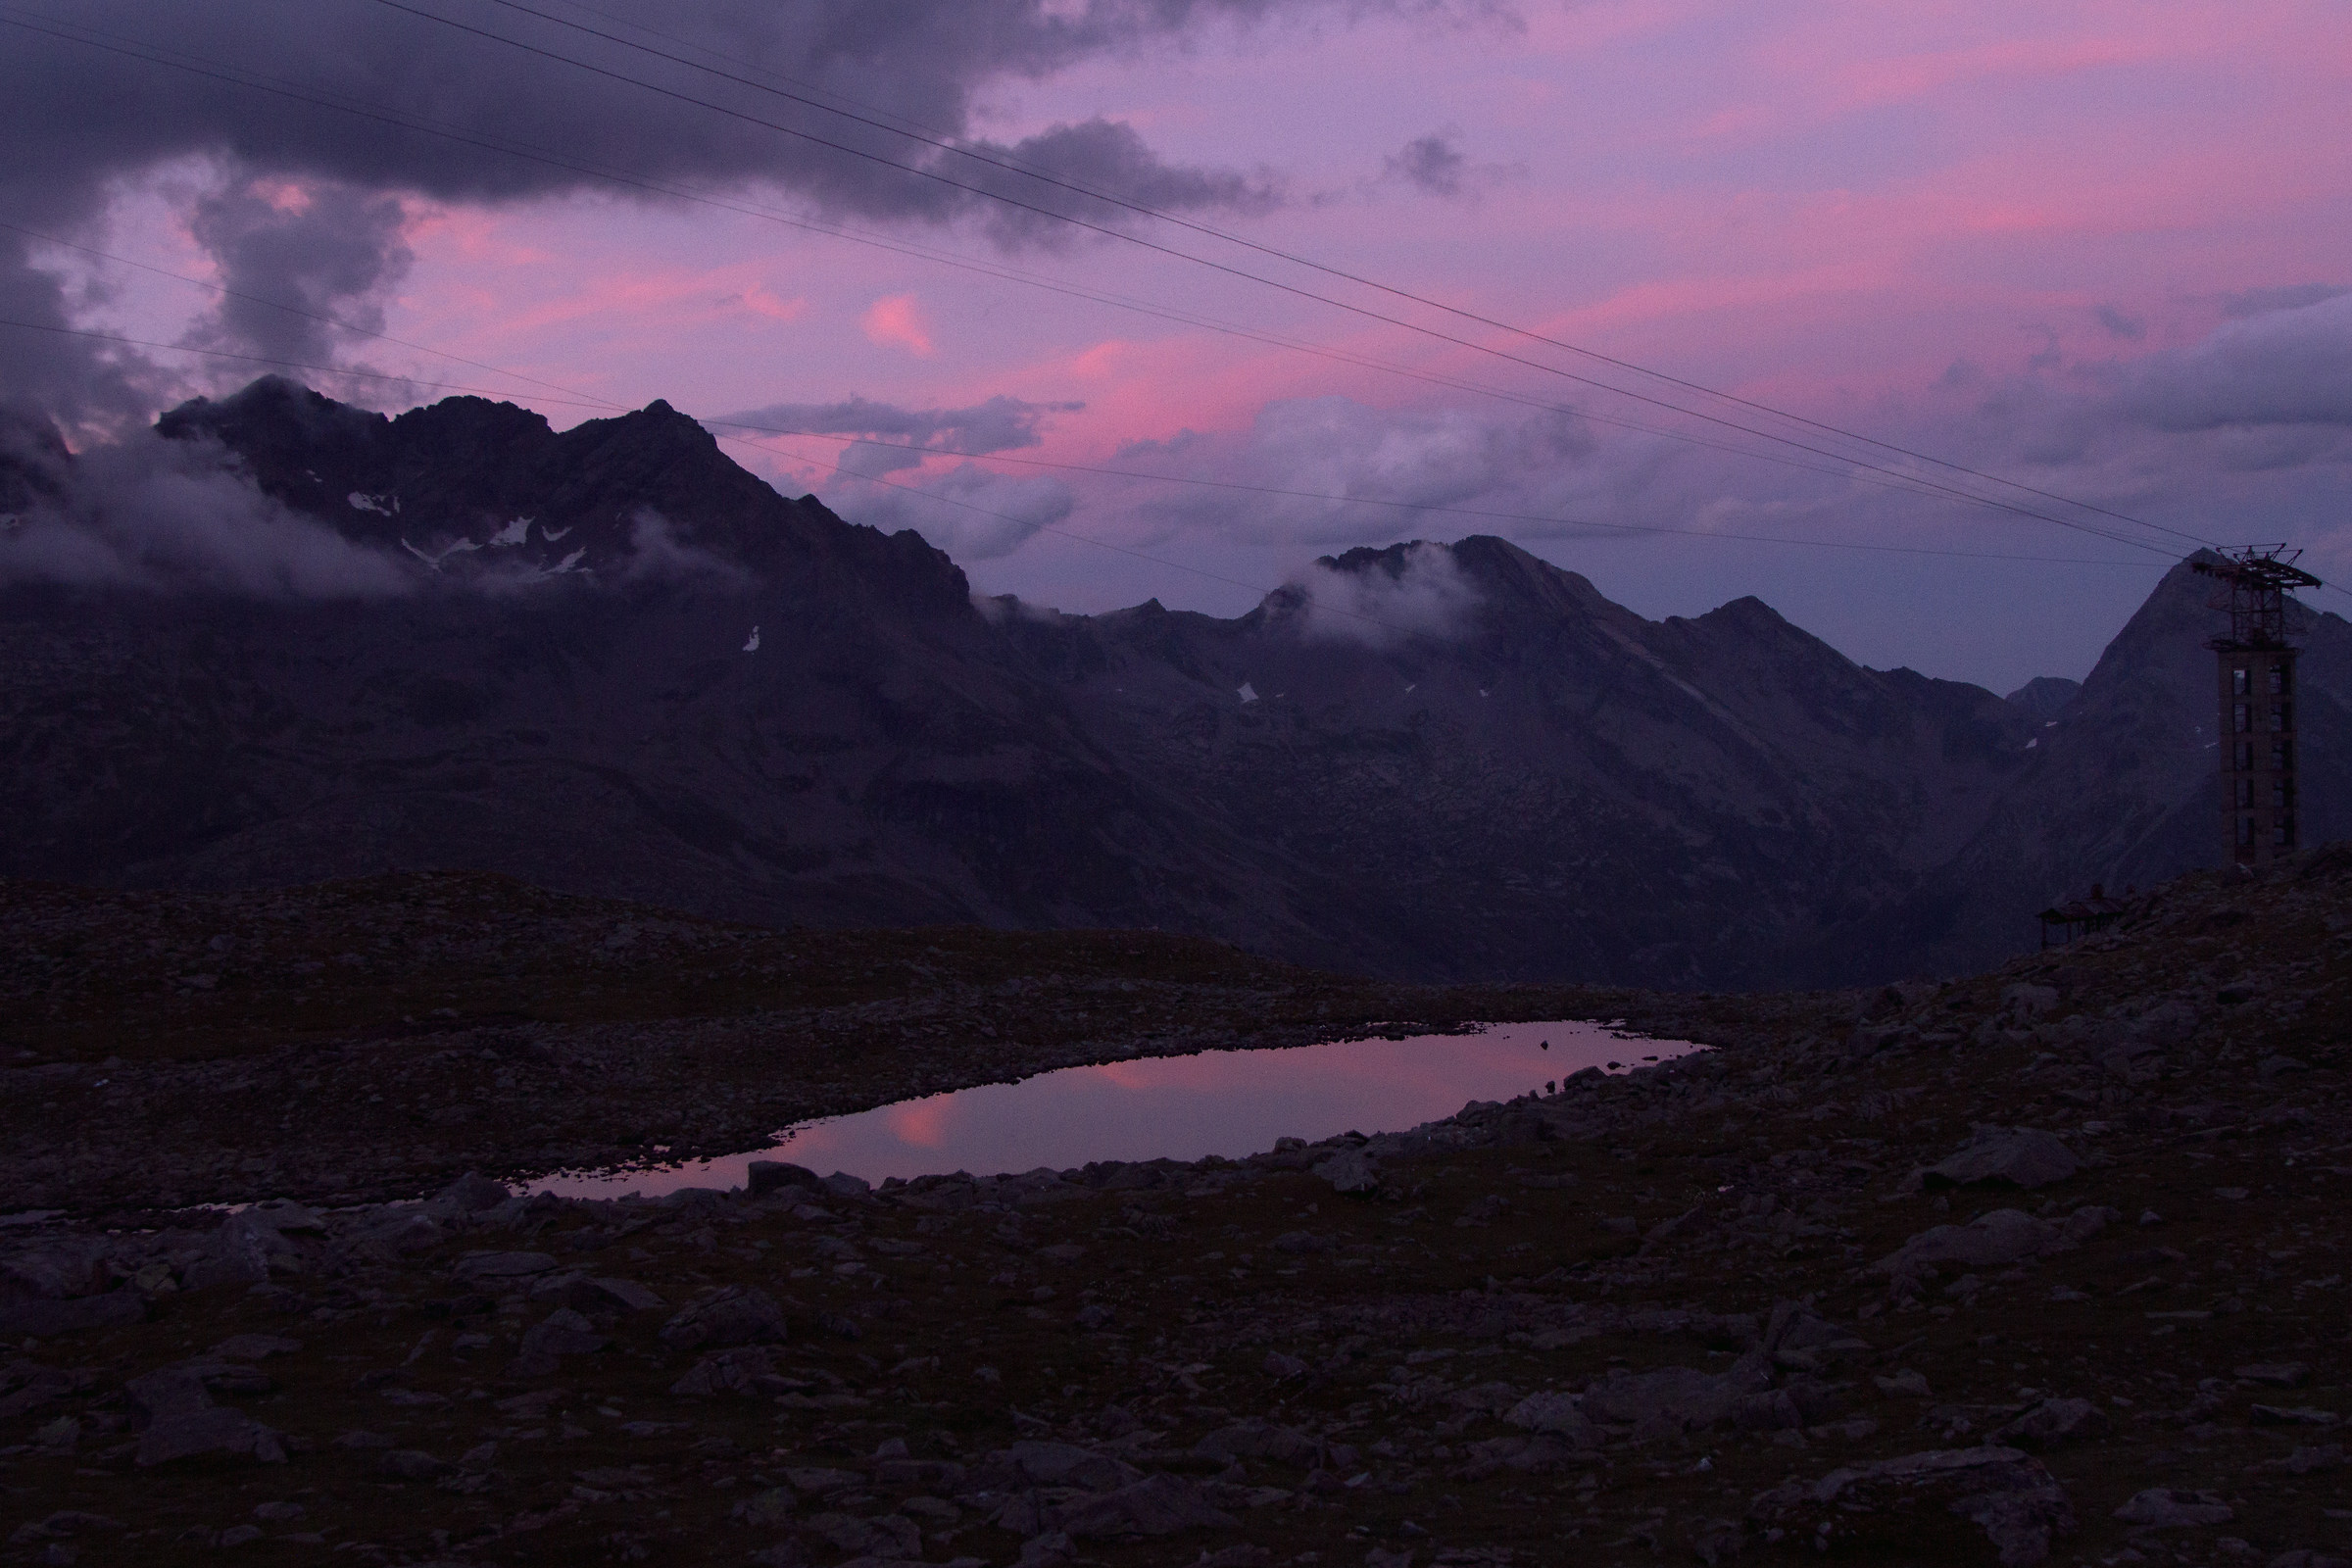 Sunset at the Val d'Aosta-Piemonte border ??...